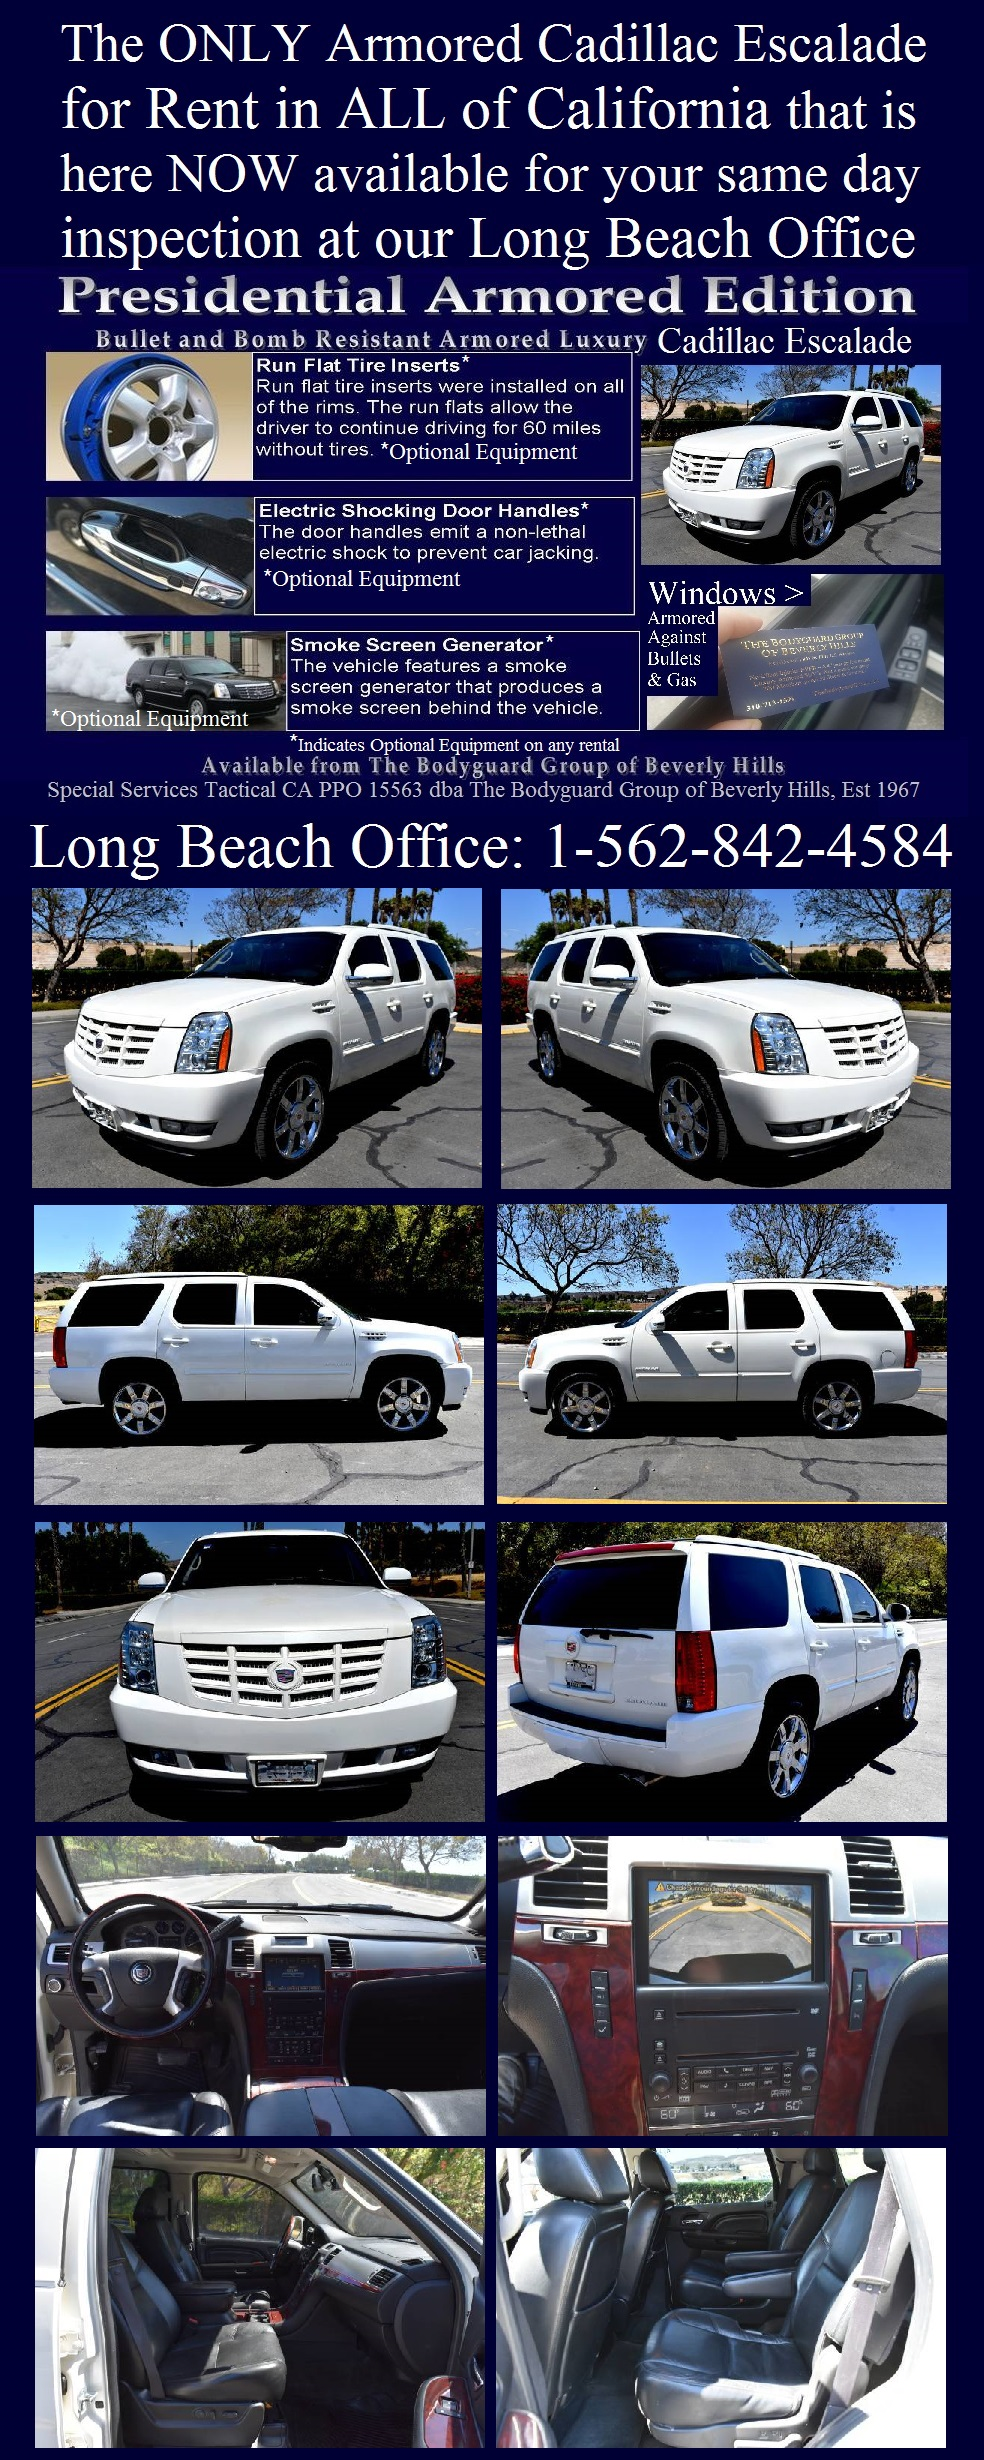 Armored cars for rent in Los Angeles and Protective detail armored cars for rent armored SUV for rent in Beverly Hills California 90210